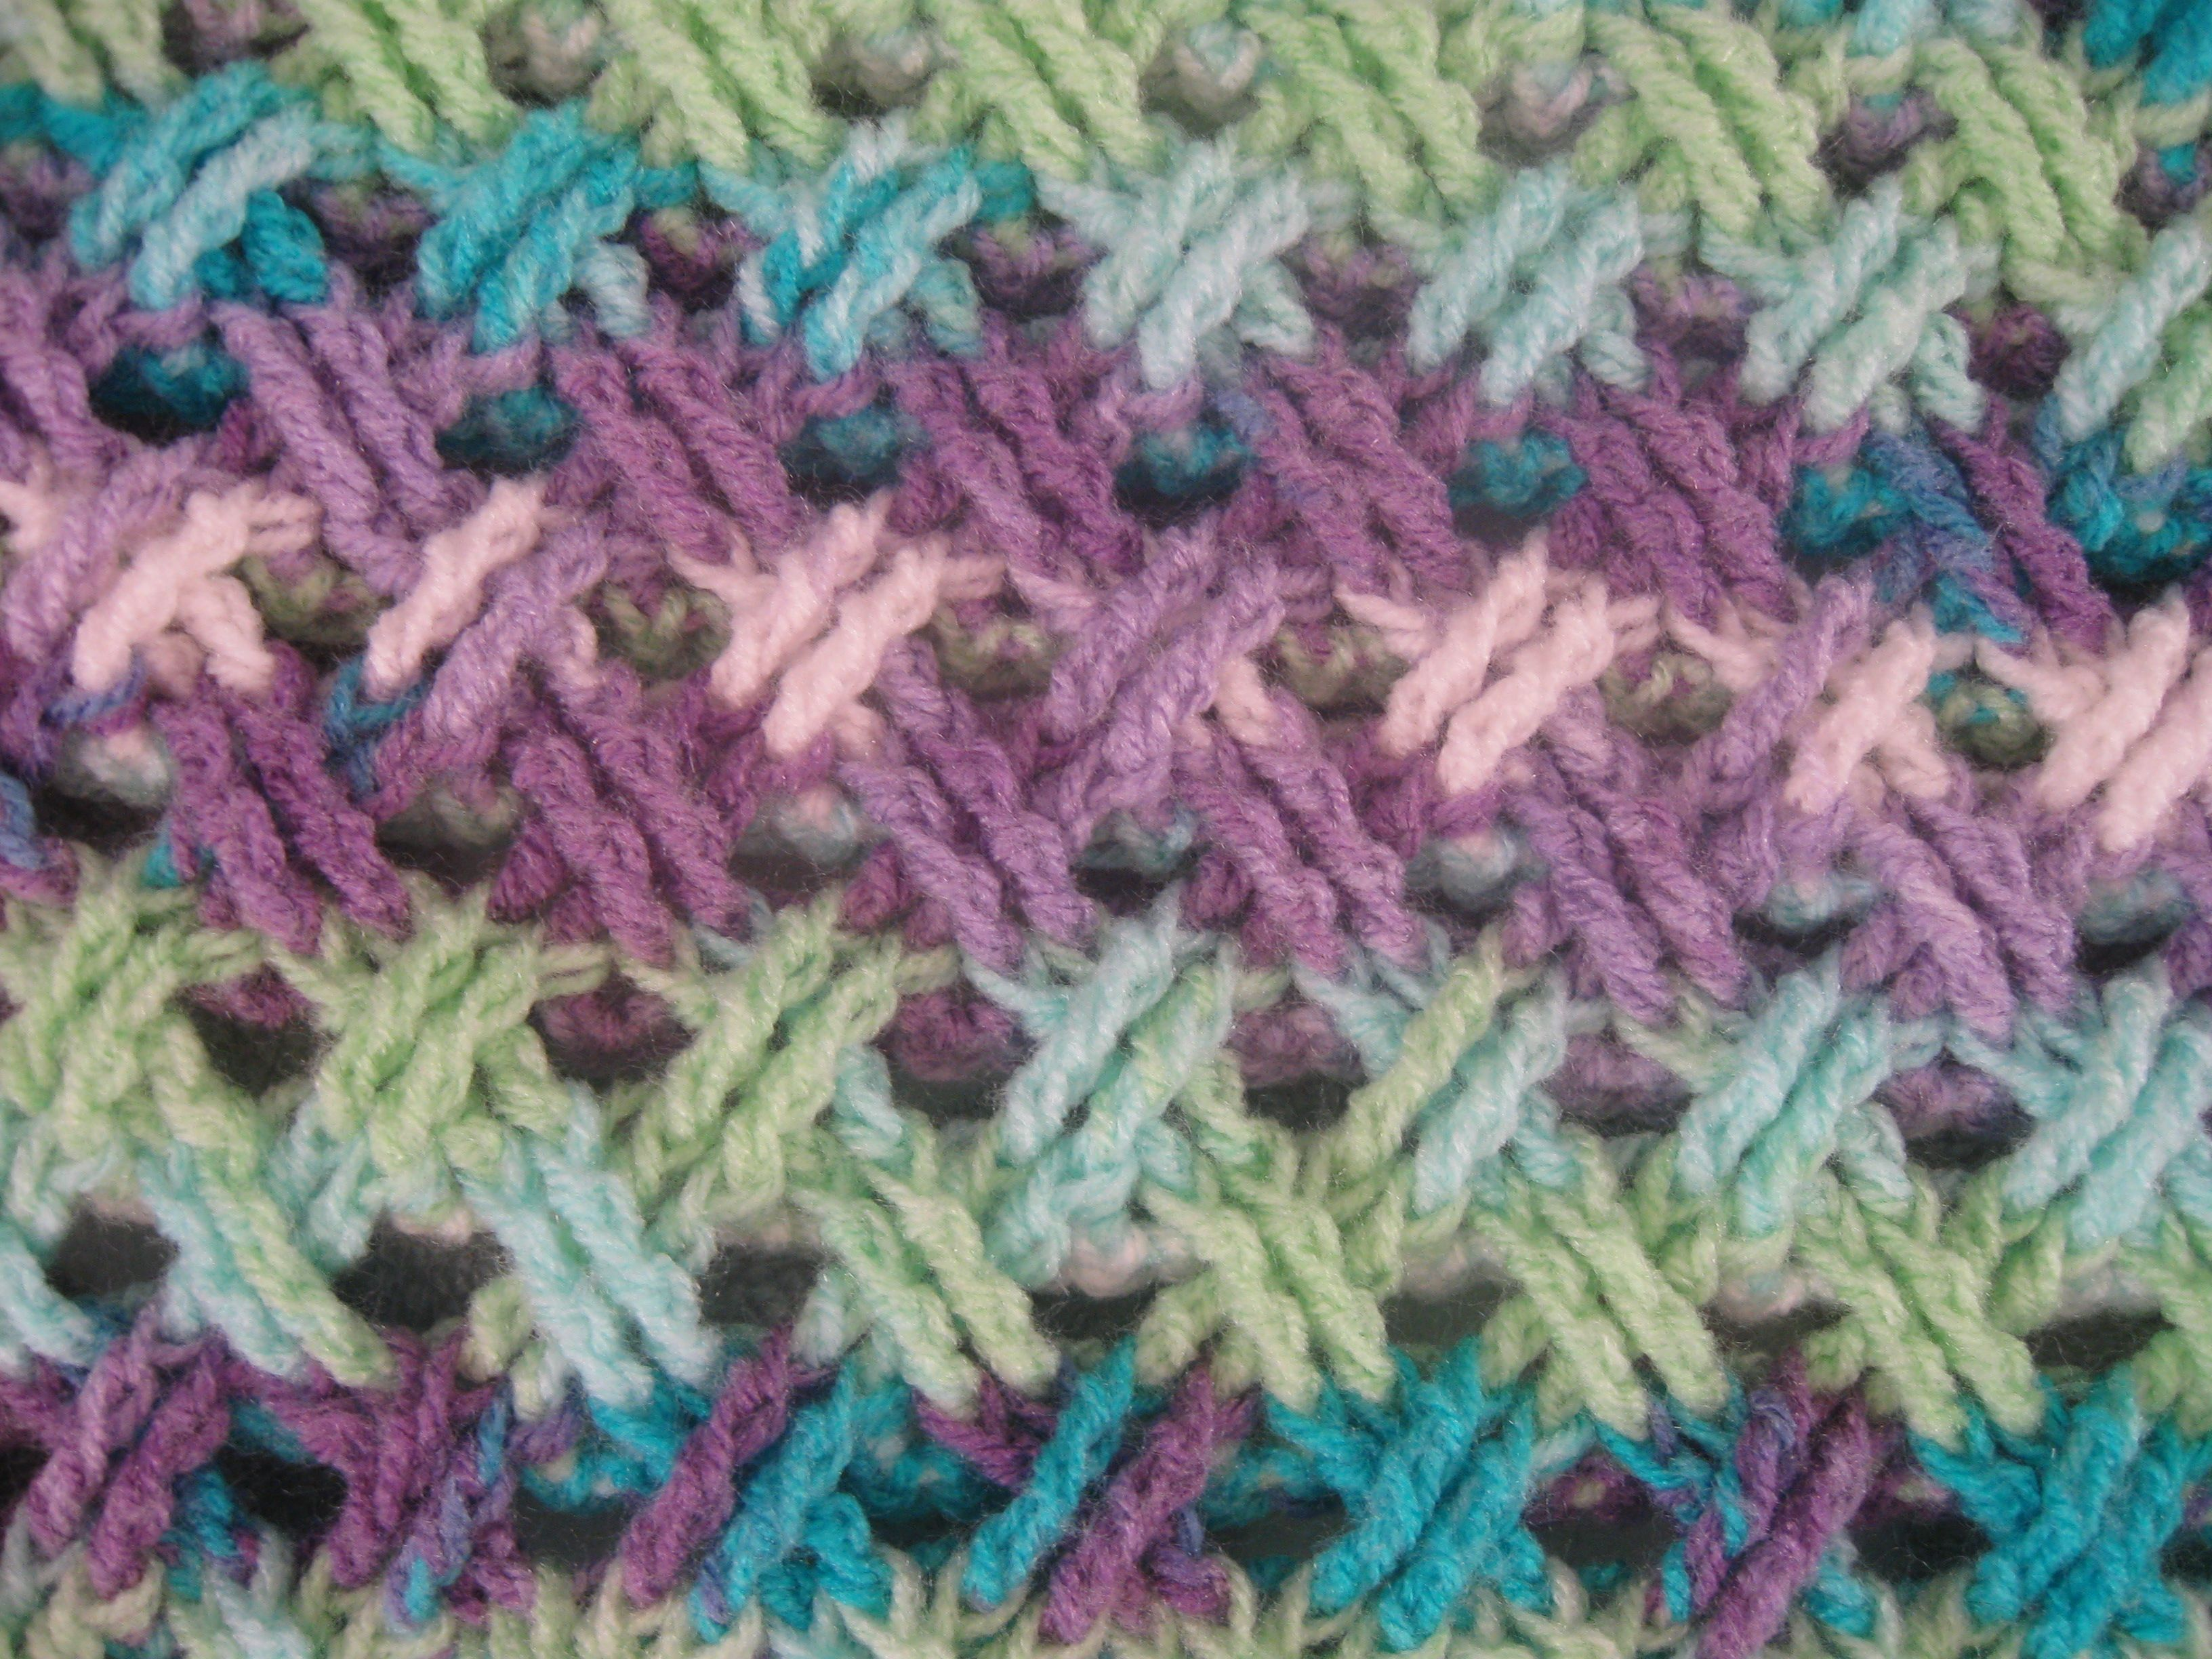 Amigurumi Stitch Tutorial : Here you can learn how to crochet the interweave cable stitch by